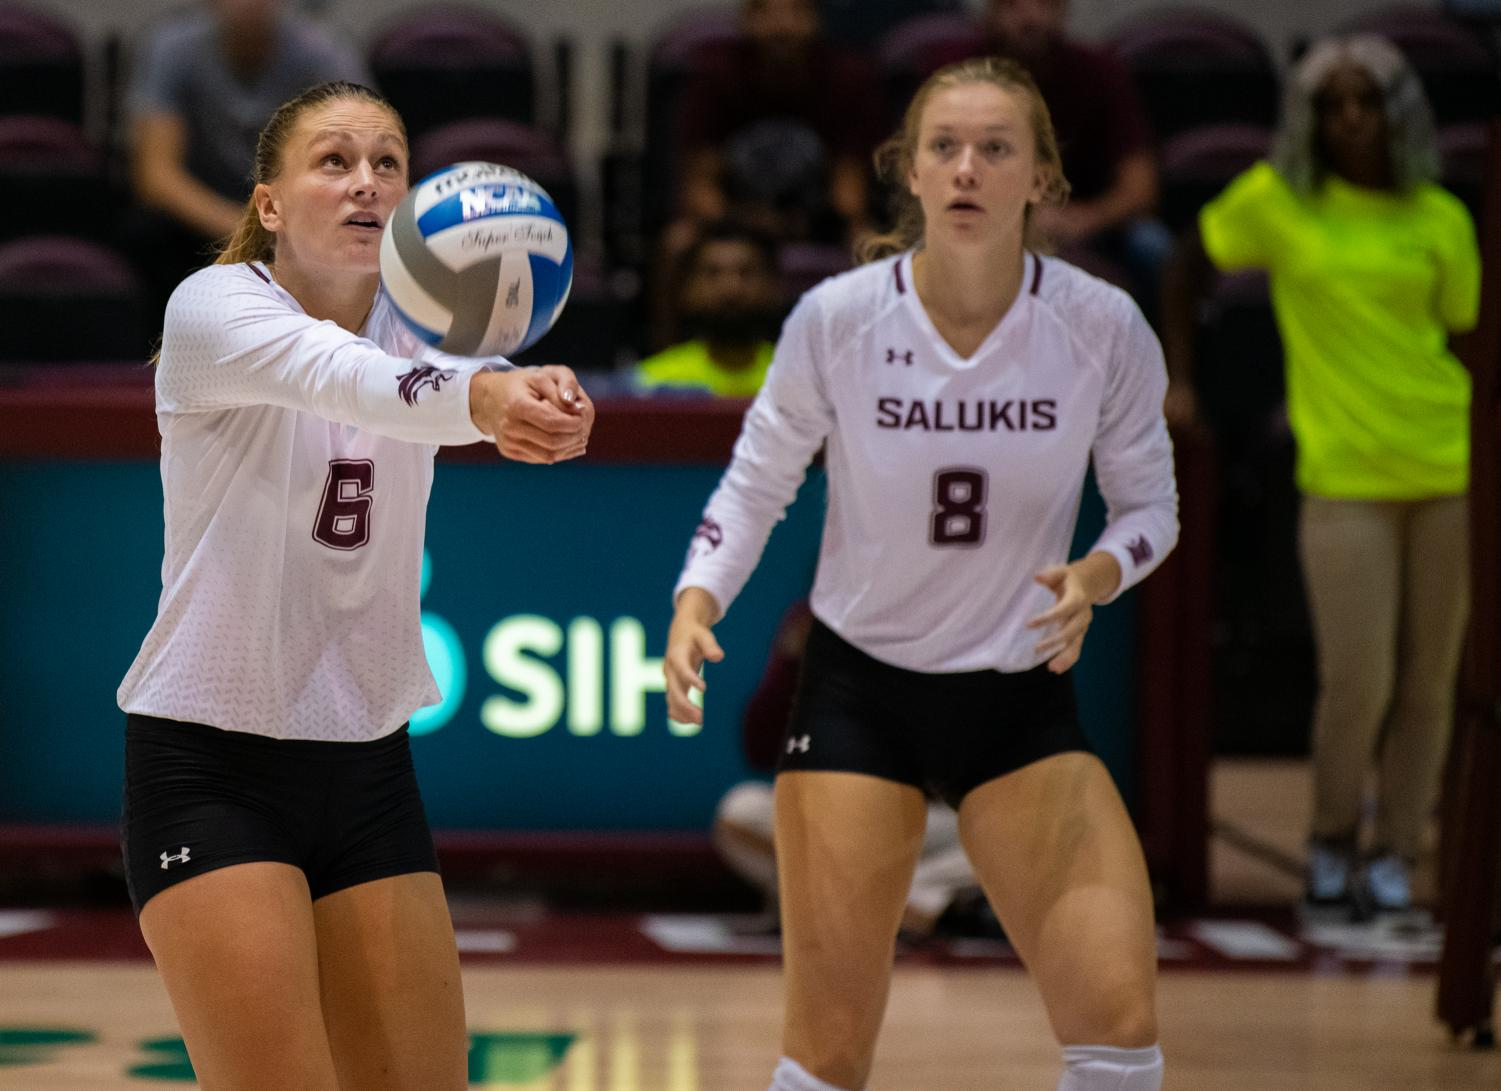 Junior+opposite+hitter+Emma+Baalman+hits+the+ball+on+Saturday%2C+Sept.+7%2C+2019+during+the+Salukis%E2%80%99+3-1+win+against+the+Southeastern+Louisiana+University+Lions+at+the+Banterra+Center.+